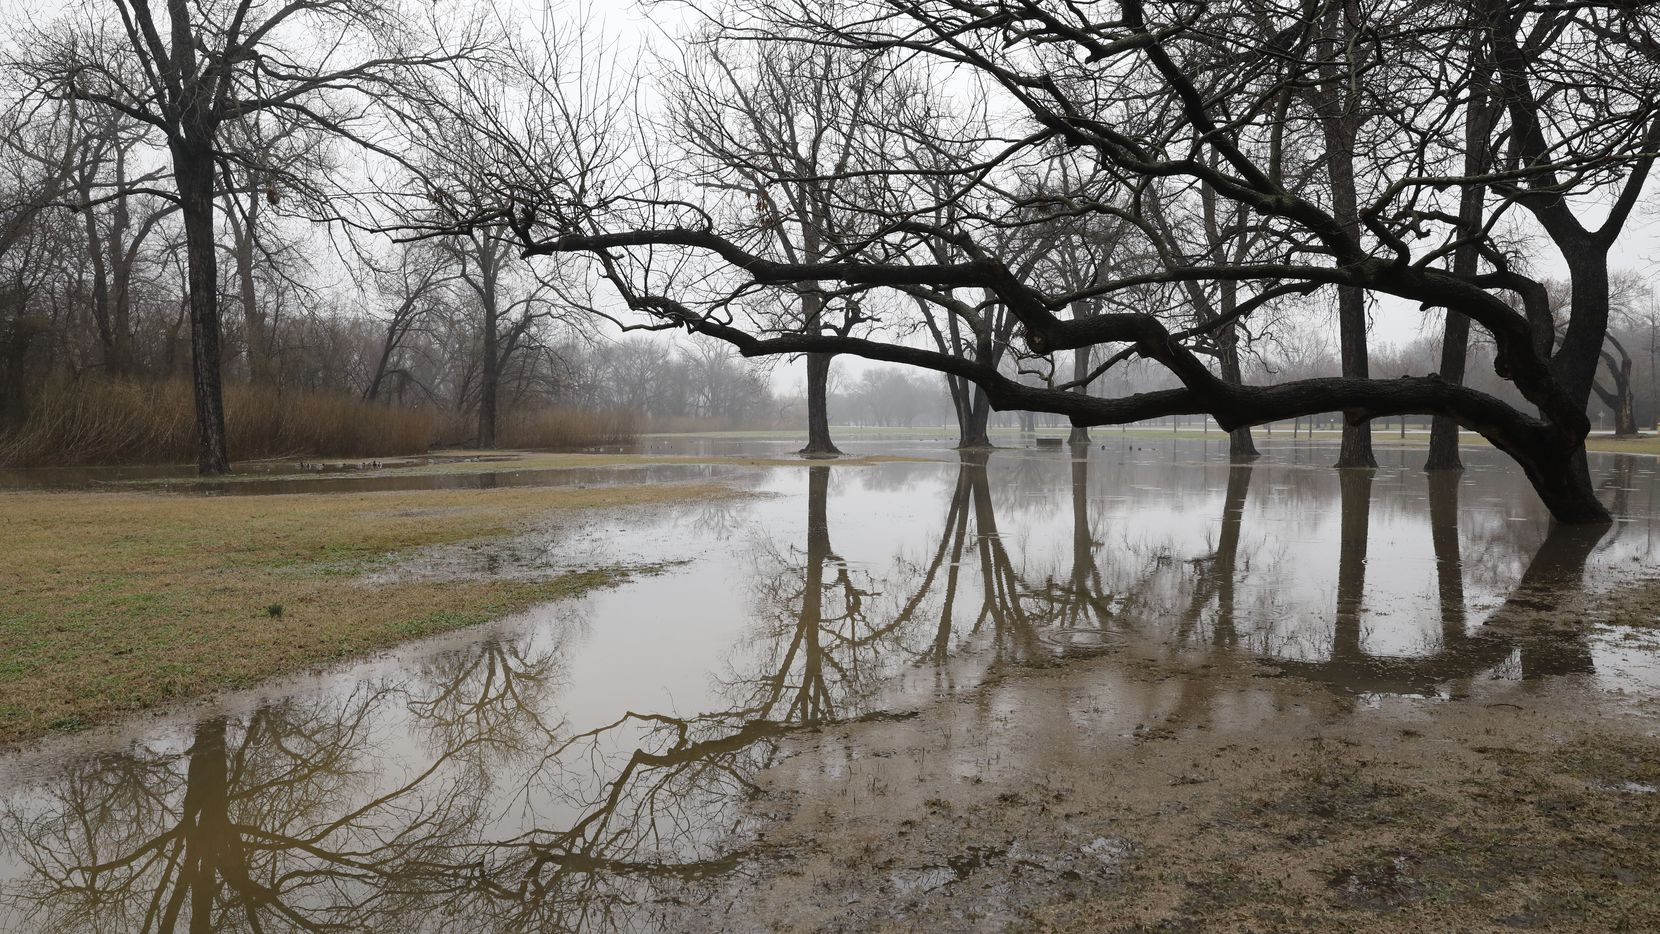 Trees are reflected in the water at White Rock Lake in Dallas after heavy rains Thursday.